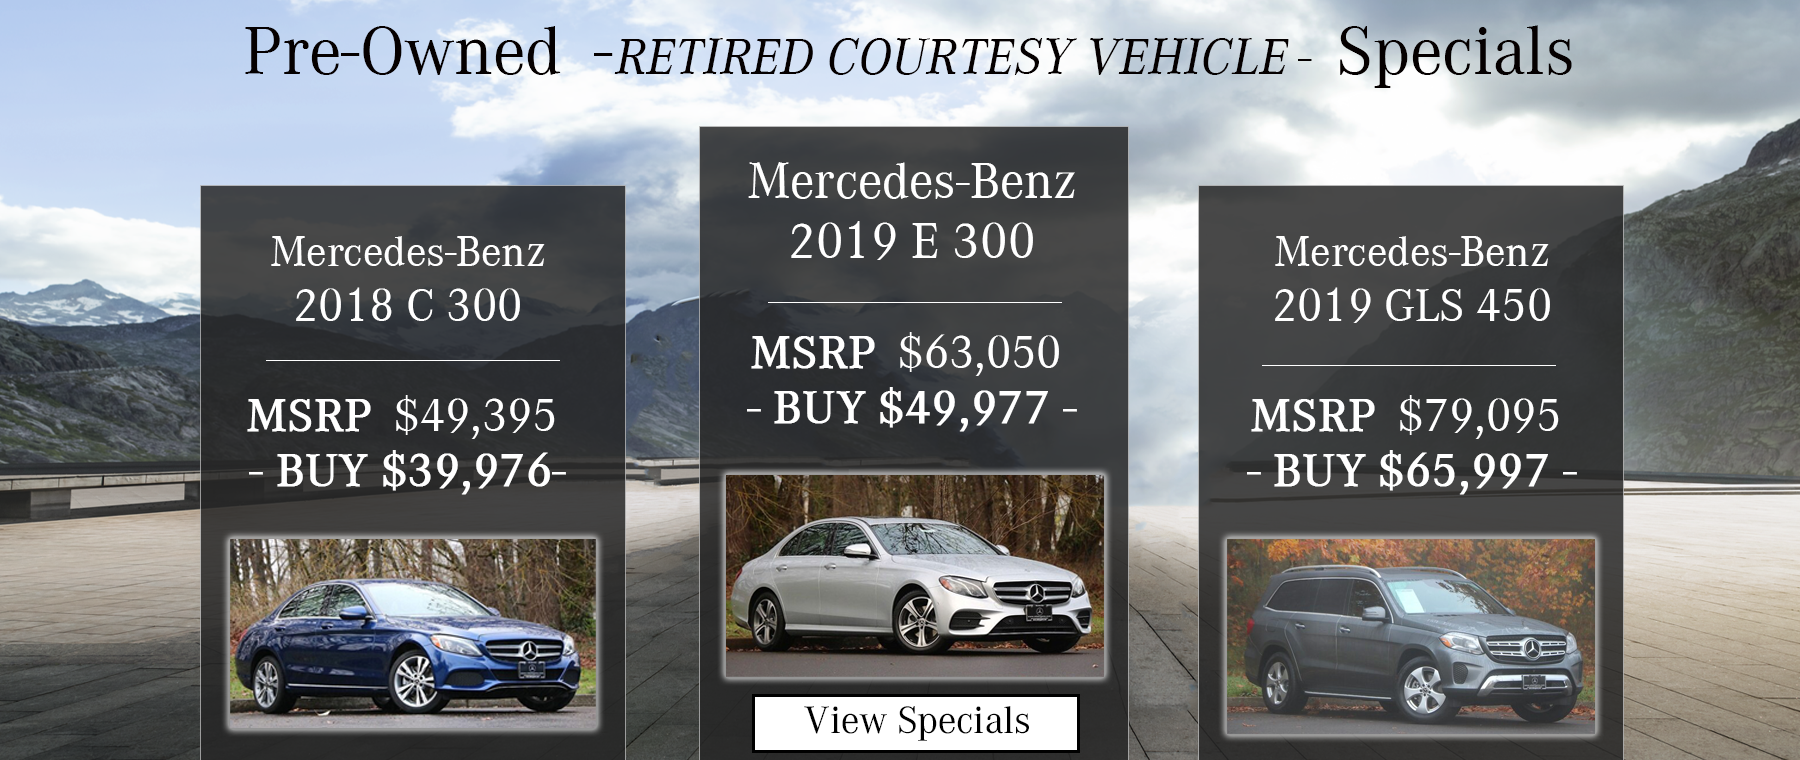 PRE-OWNED RETIRED COURTESY VEHICLE SPECIALS